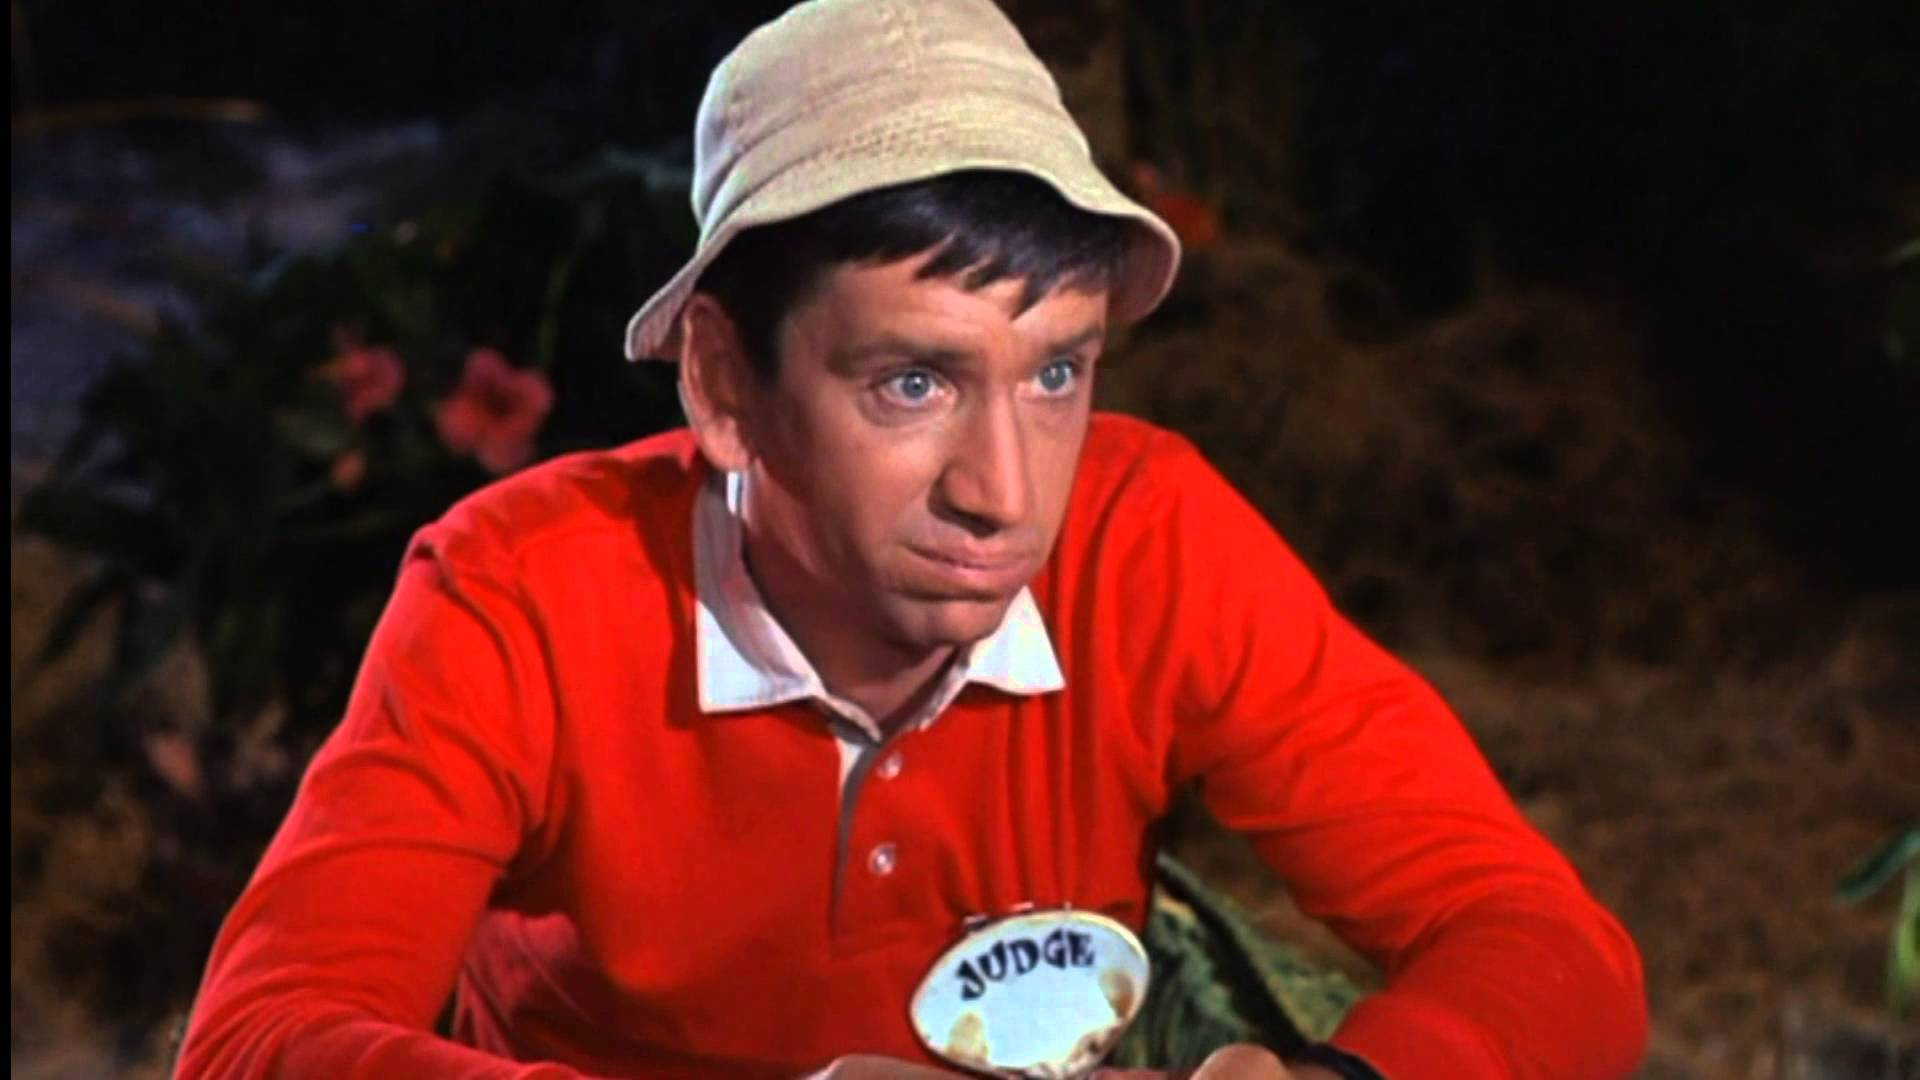 Bob Denver HQ wallpapers